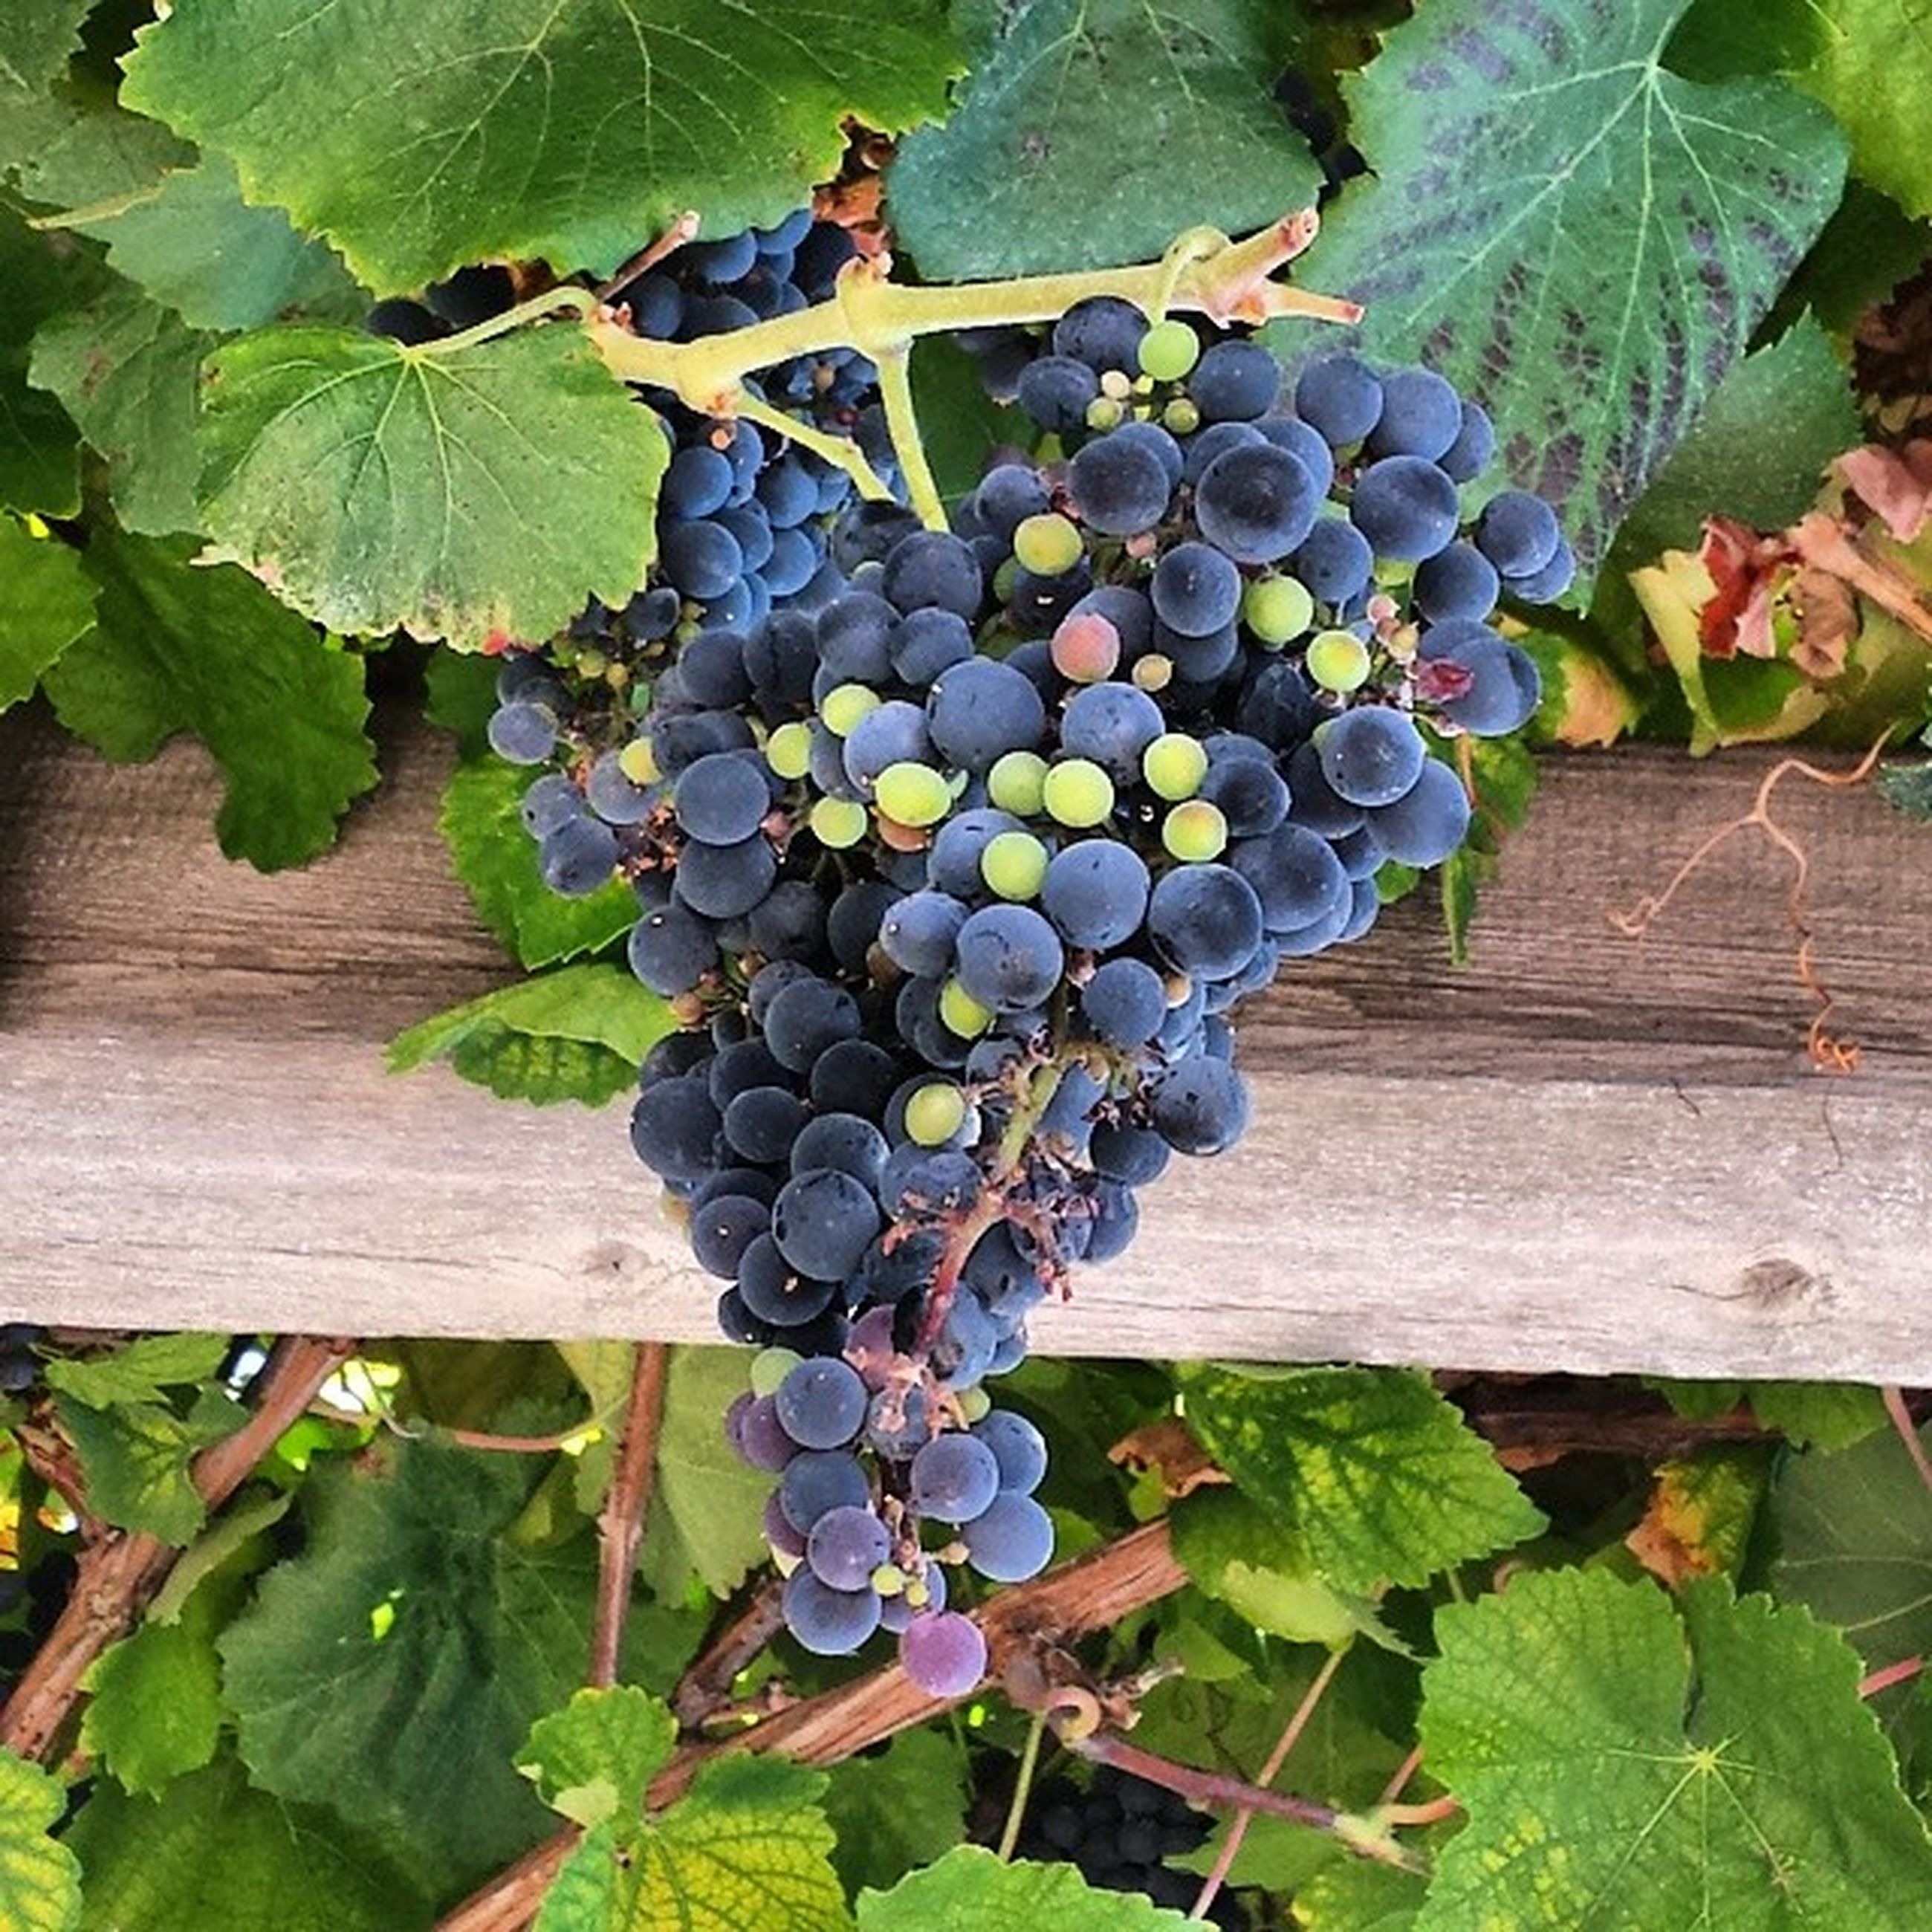 fruit, freshness, growth, leaf, food and drink, healthy eating, vineyard, grape, green color, food, plant, vine, bunch, agriculture, hanging, nature, wood - material, tree, growing, ripe